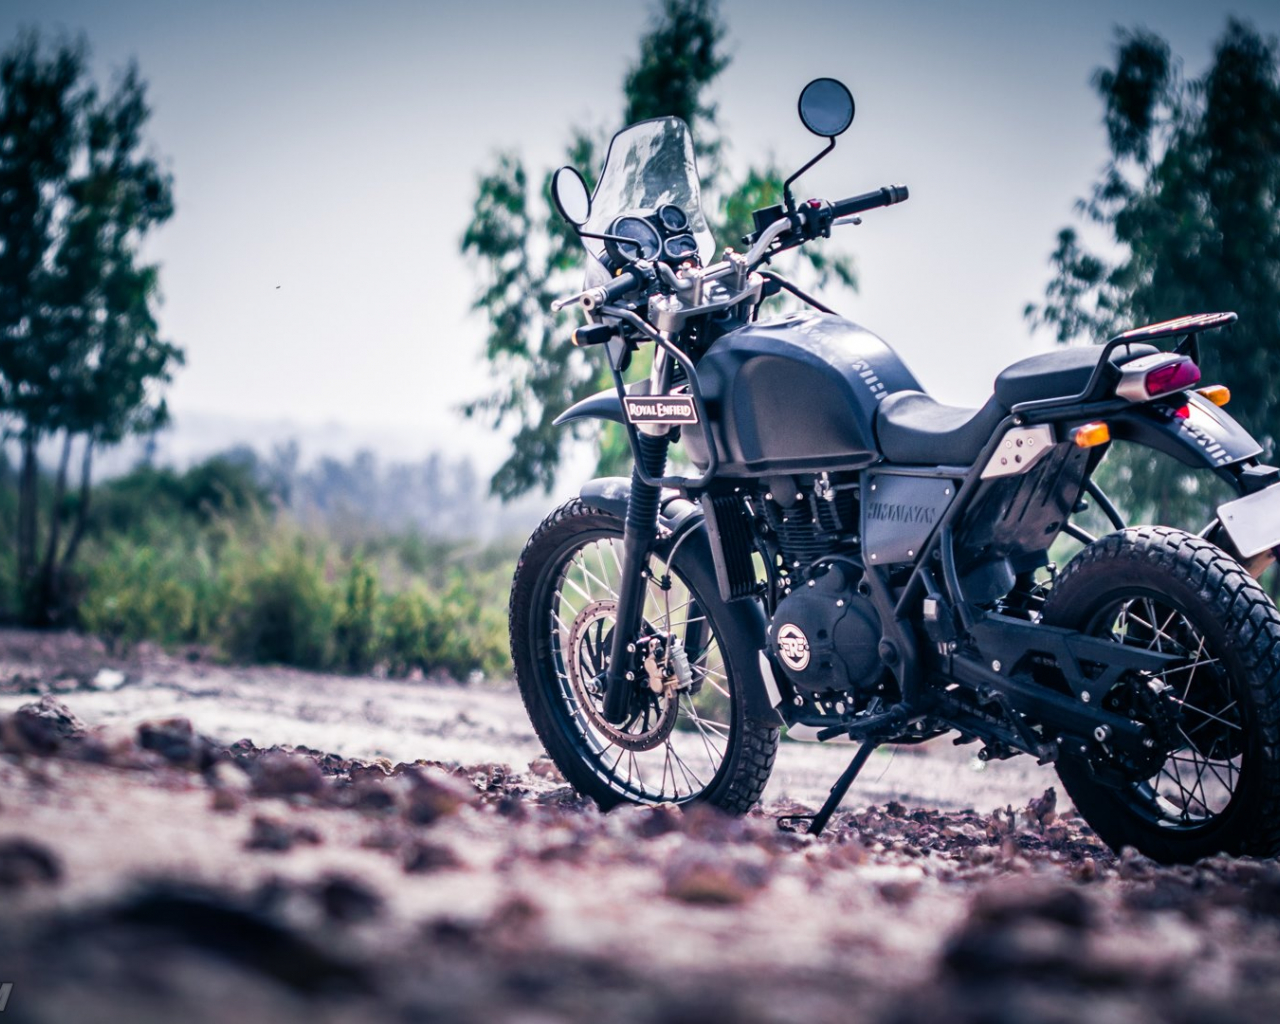 Free Download Royal Enfield Himalayan Hd Wallpapers 5